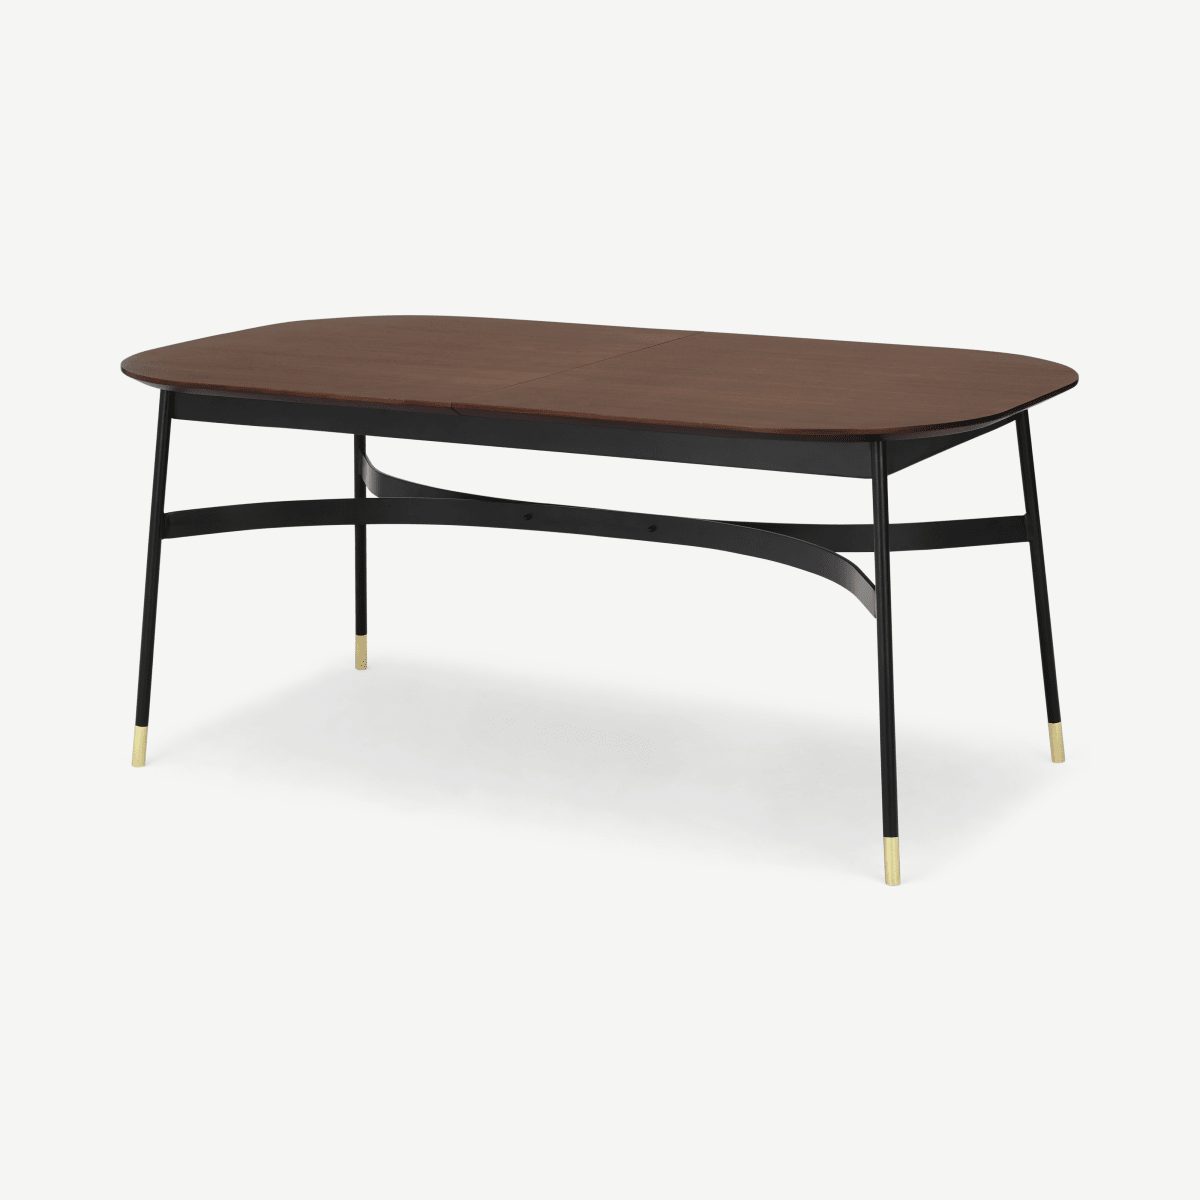 Amalyn Double Extending Table, Walnut